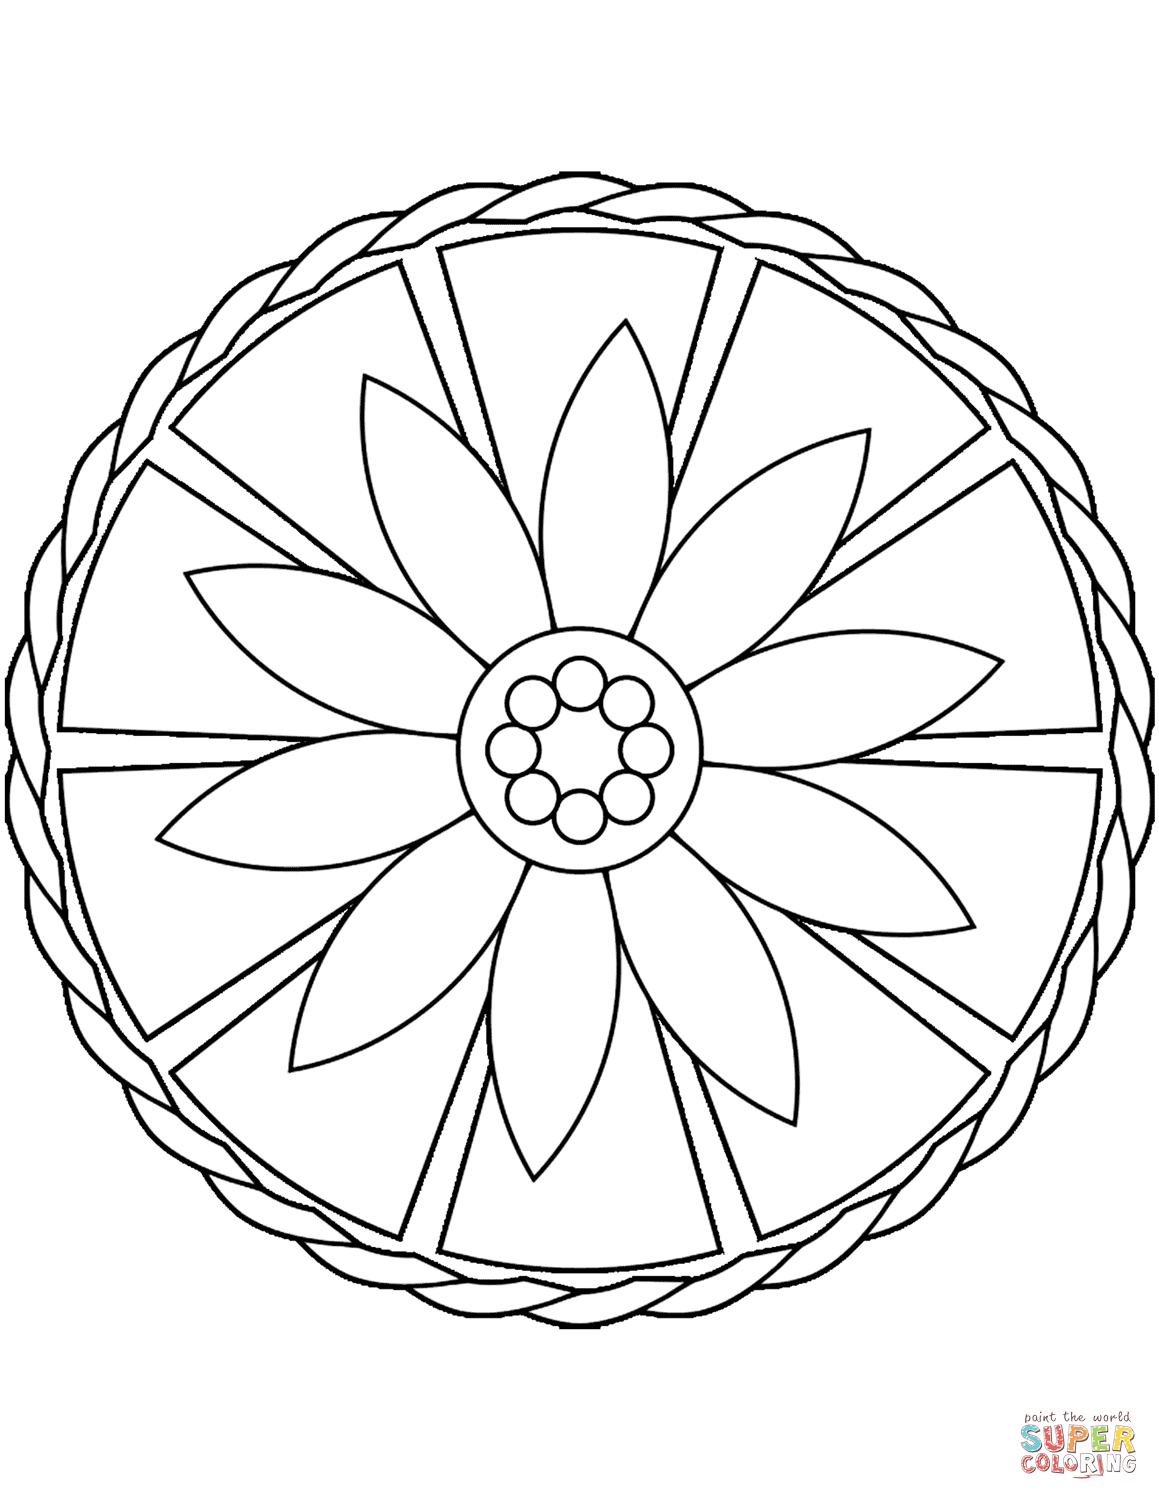 Cozy Simple Coloring Pages For Toddlers Mandala Printable